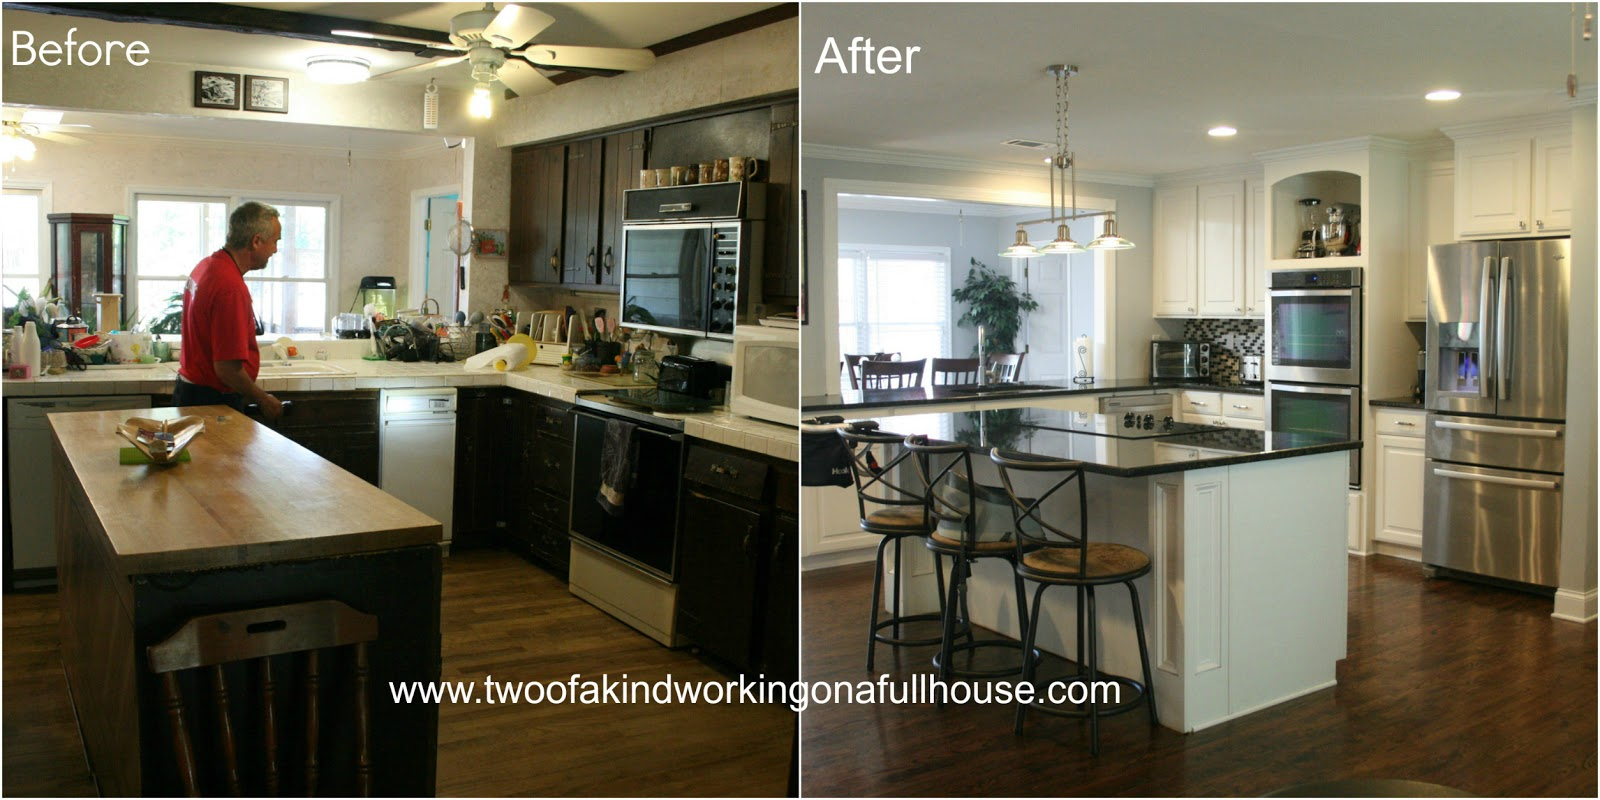 Wordless Wednesday BeforeAfter Kitchen Remodel Pictures